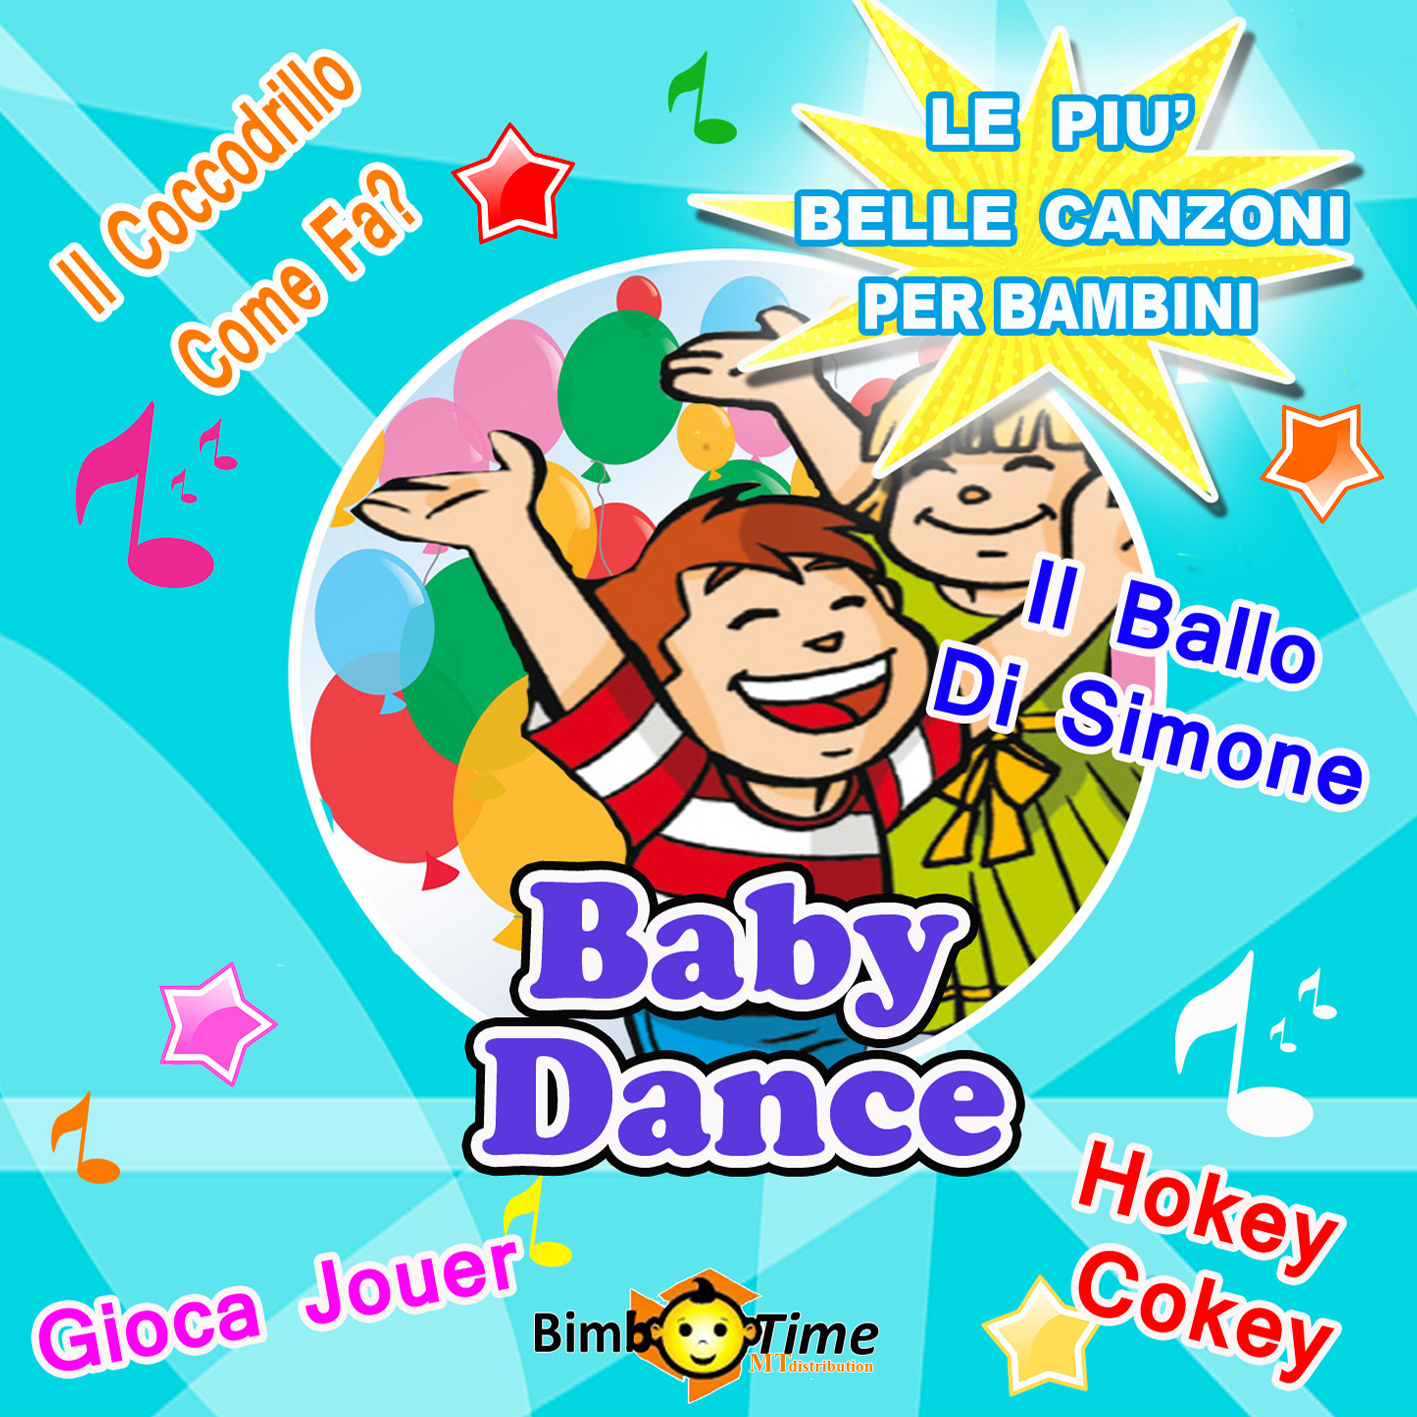 Baby Dance - Gioca Jouer, Il Ballo Di Simone, Il Ballo Del Qua Qua, And Other 12 Hits